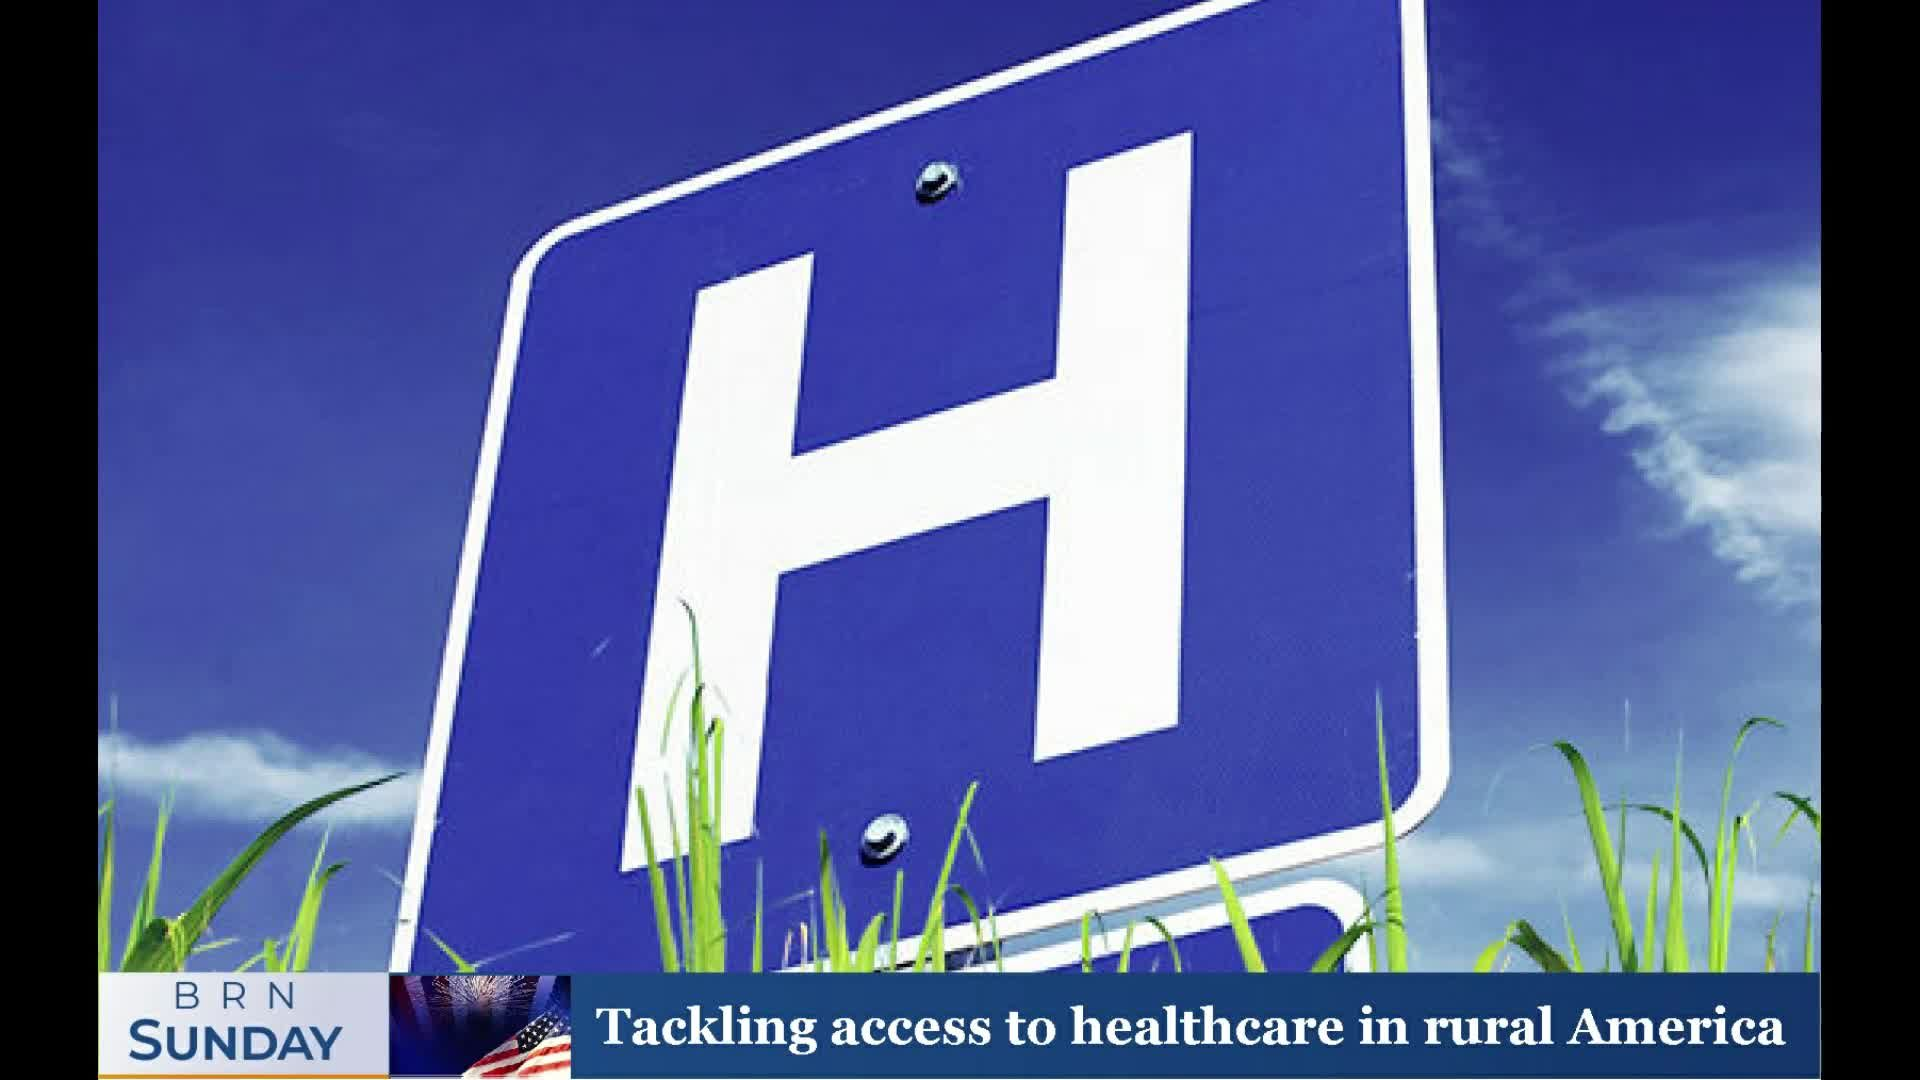 BRN Sunday | Tackling access to healthcare in rural America